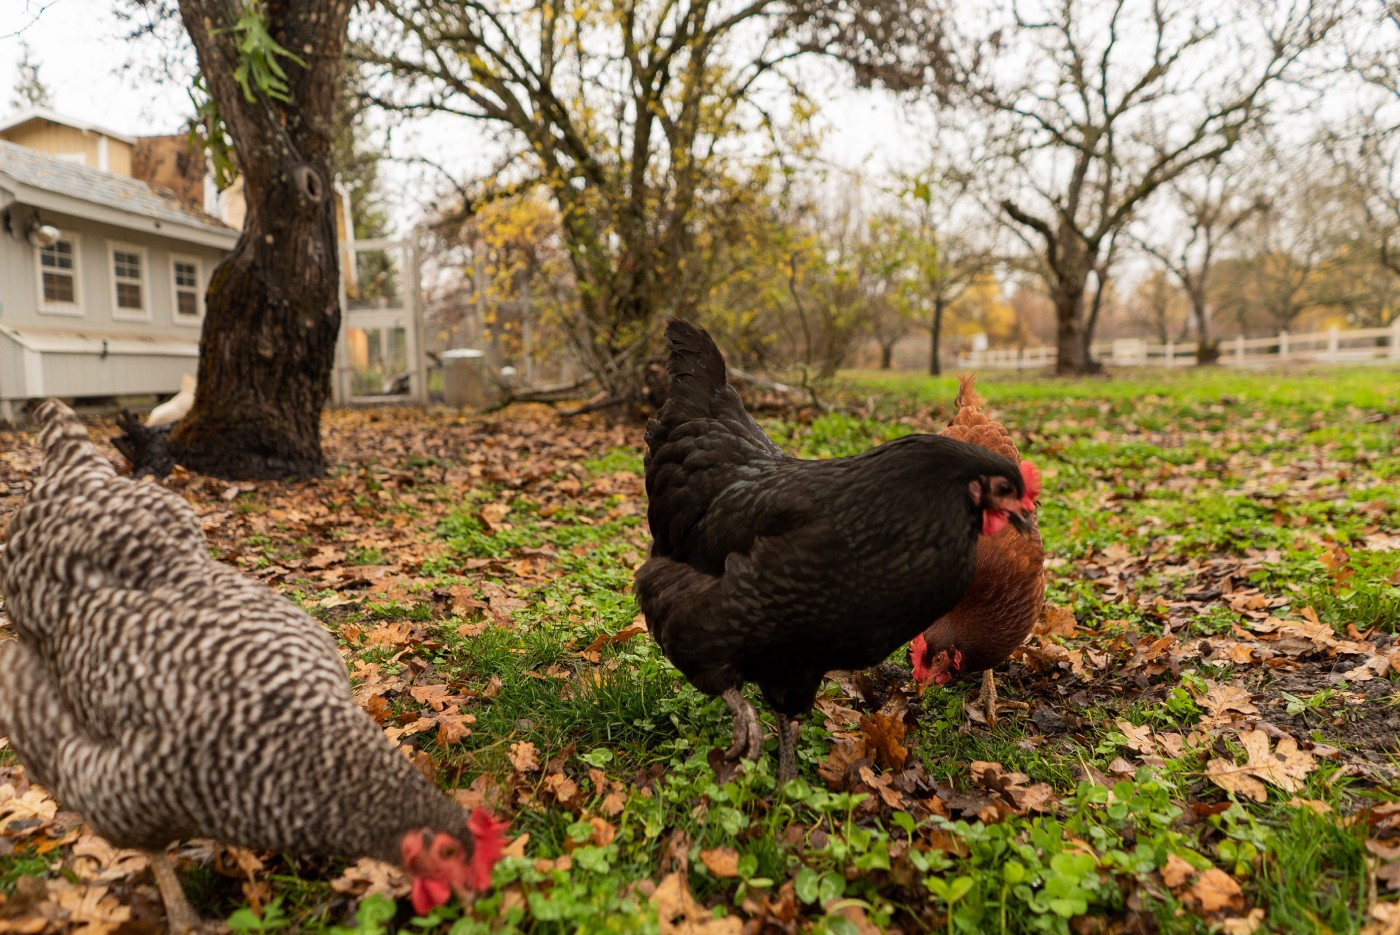 Chickens roaming in a yard in the fall.